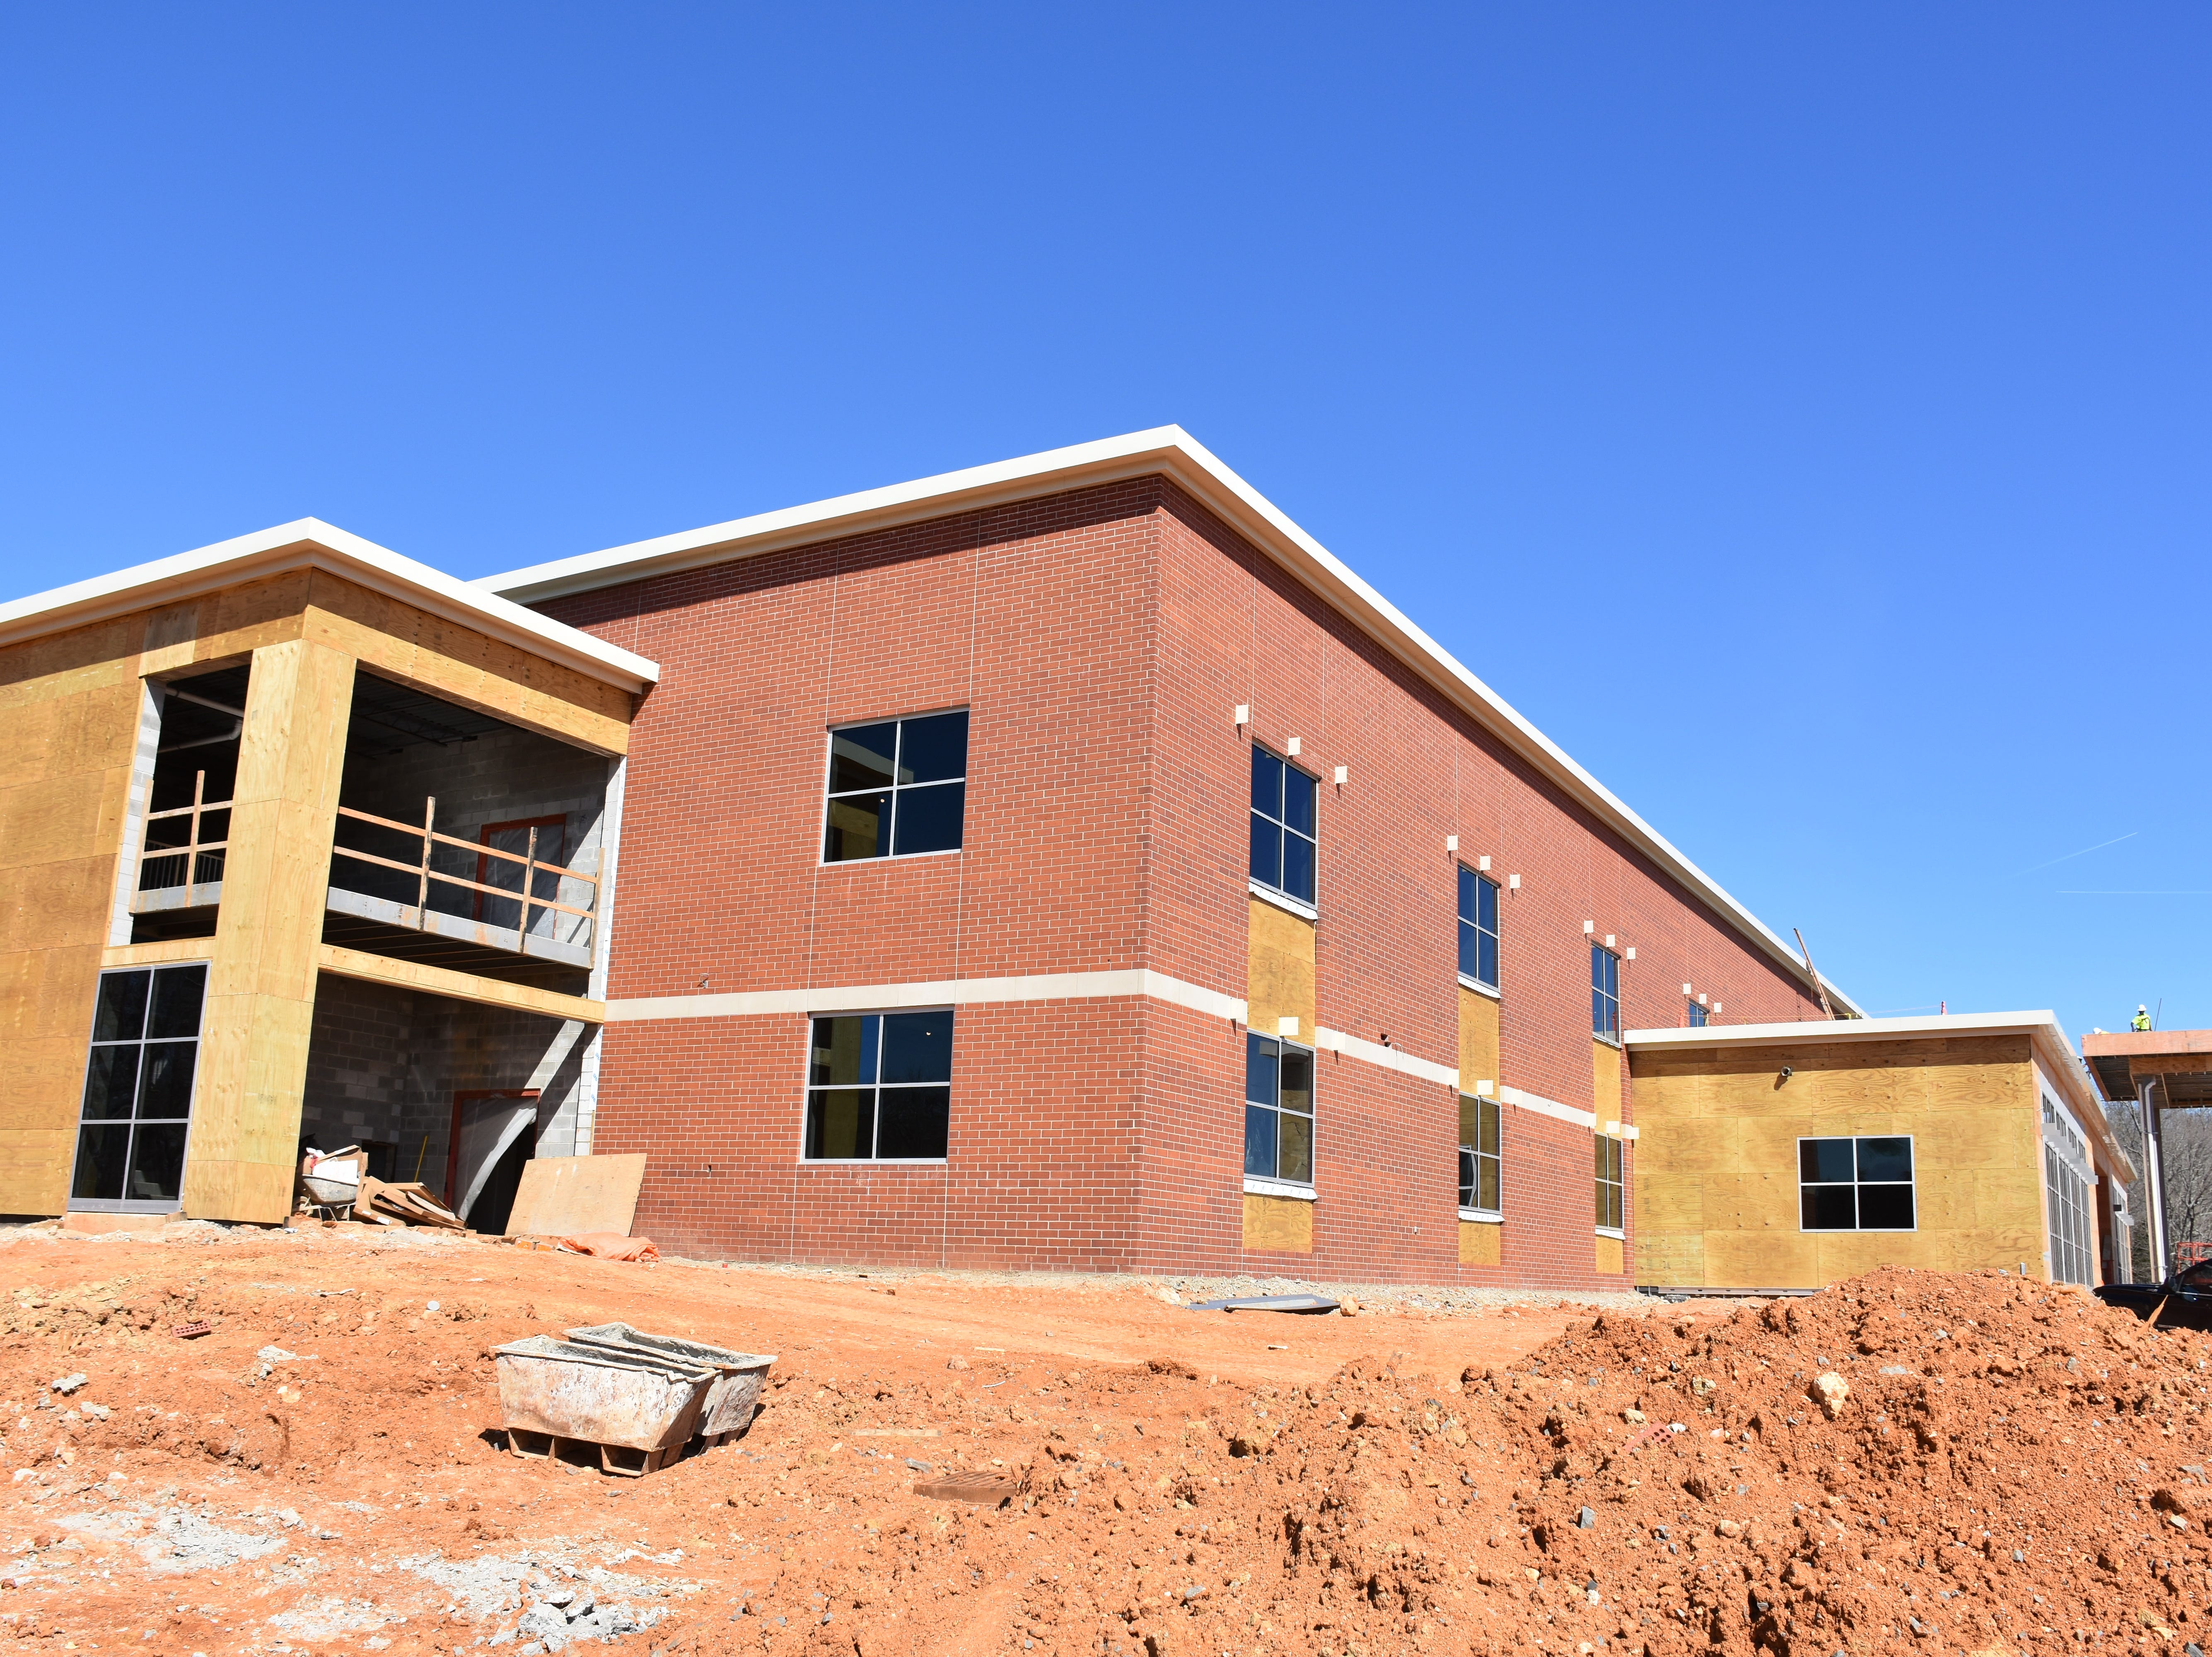 The new Burns Middle School is under construction, on a rolling hill just off Highway 96 in Burns. The school is scheduled to be open by August for the next school year. Photos taken March 27, 2019.